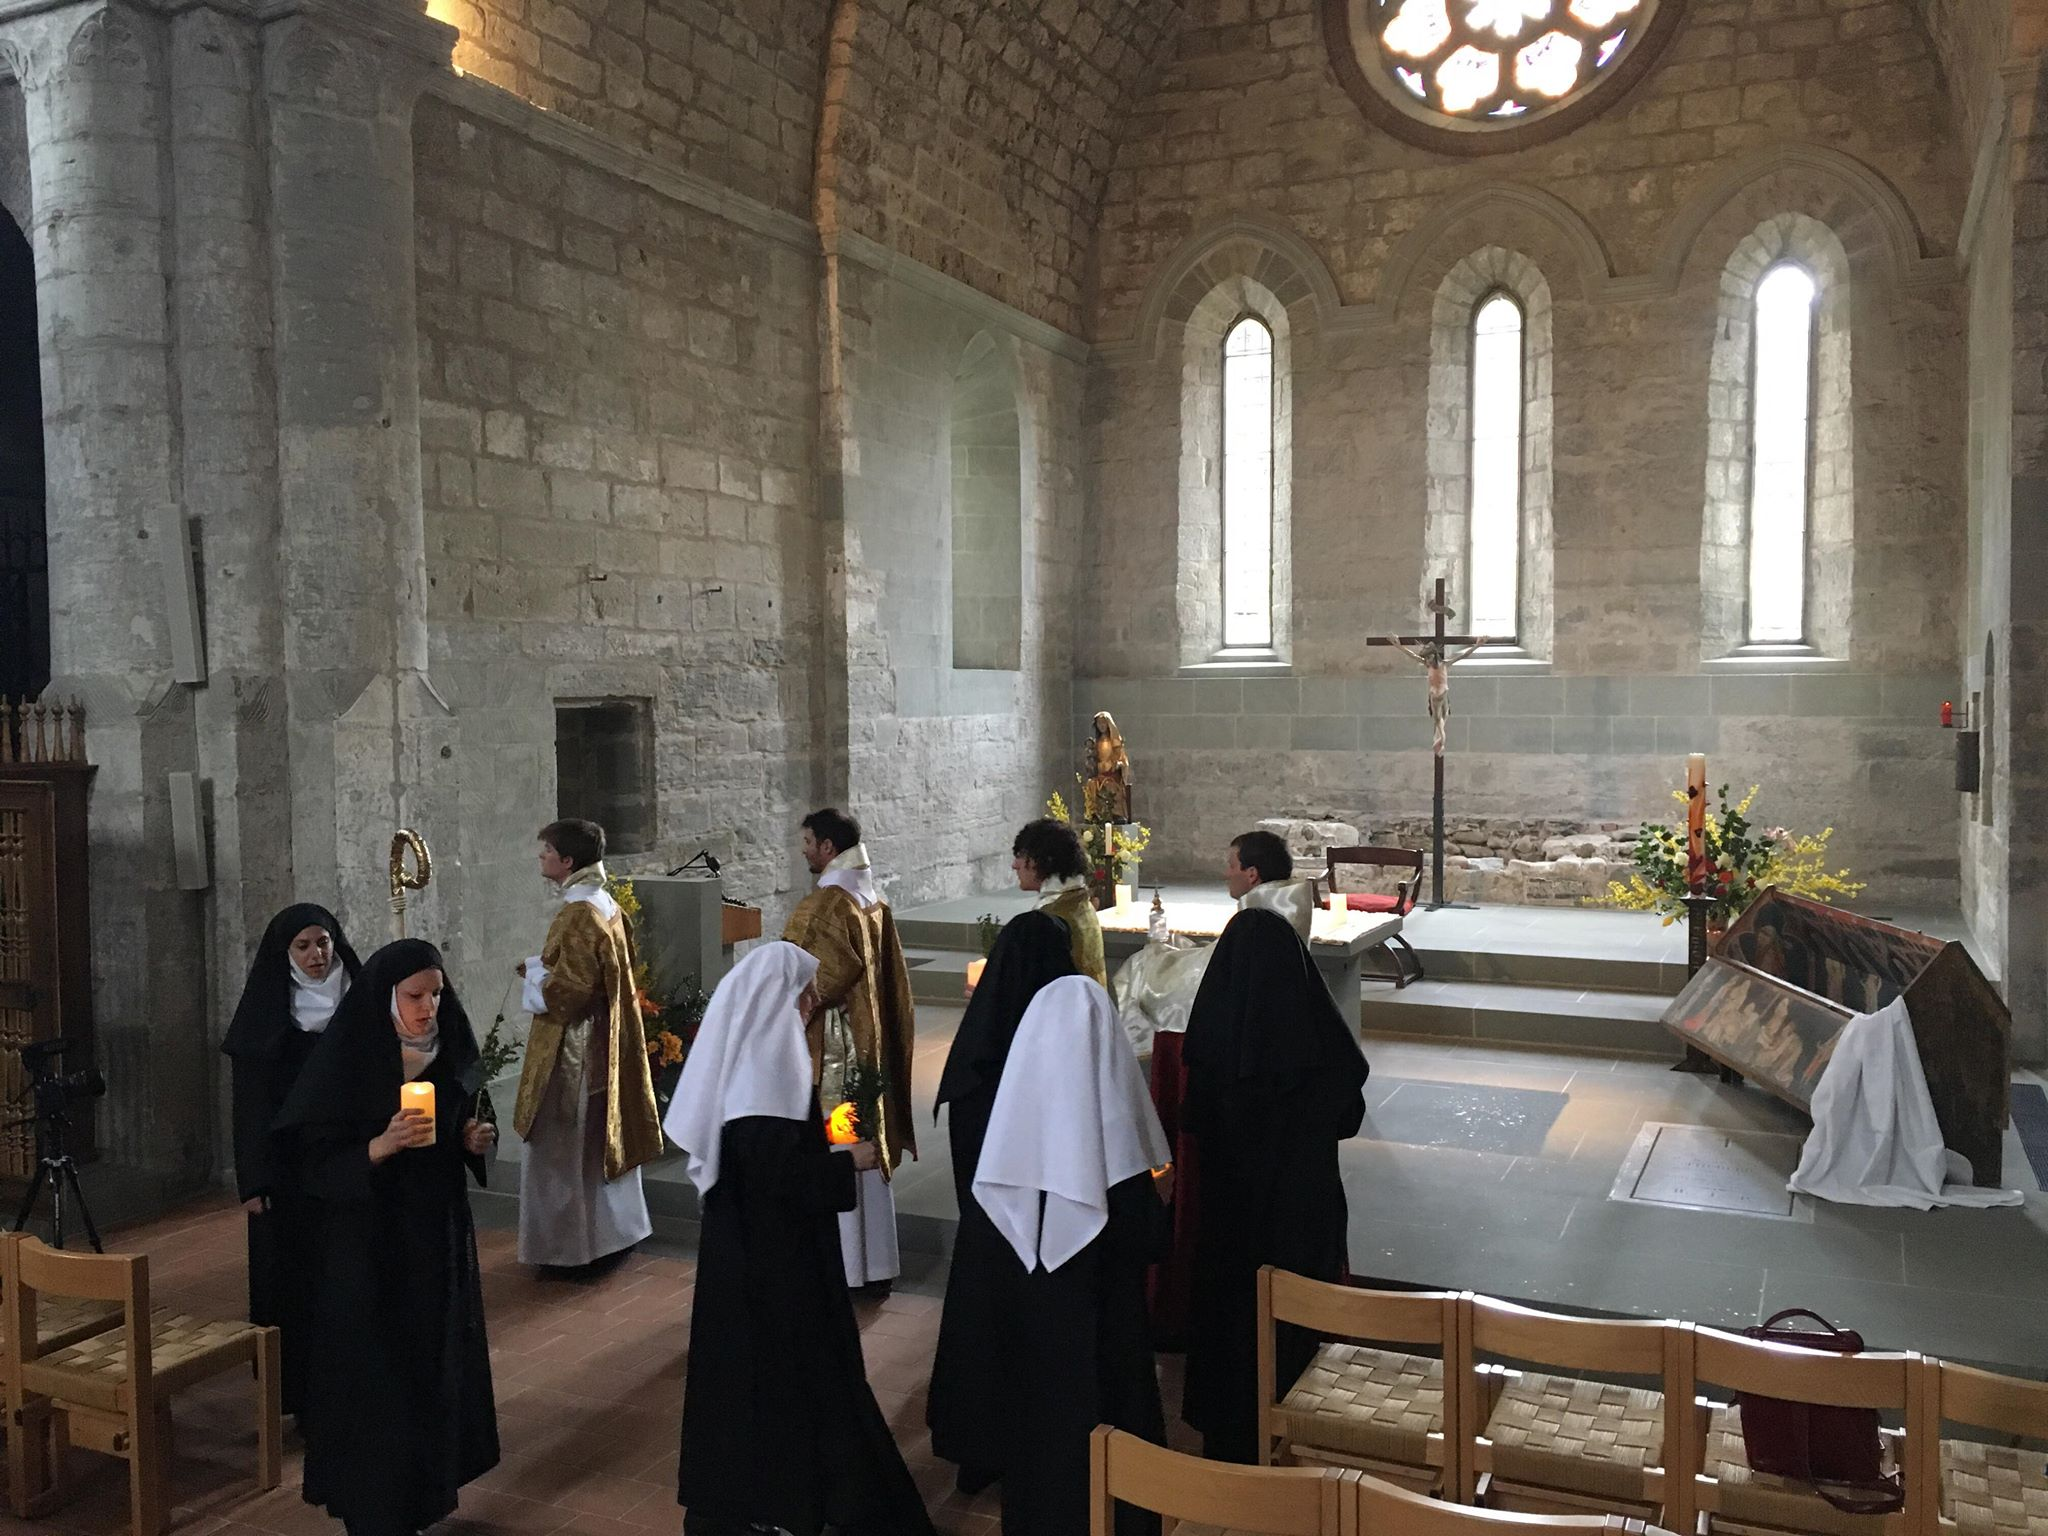 Dress rehearsal at Maigrauge Abbey, Fribourg. Procession following the Harrowing of Hell sequence.